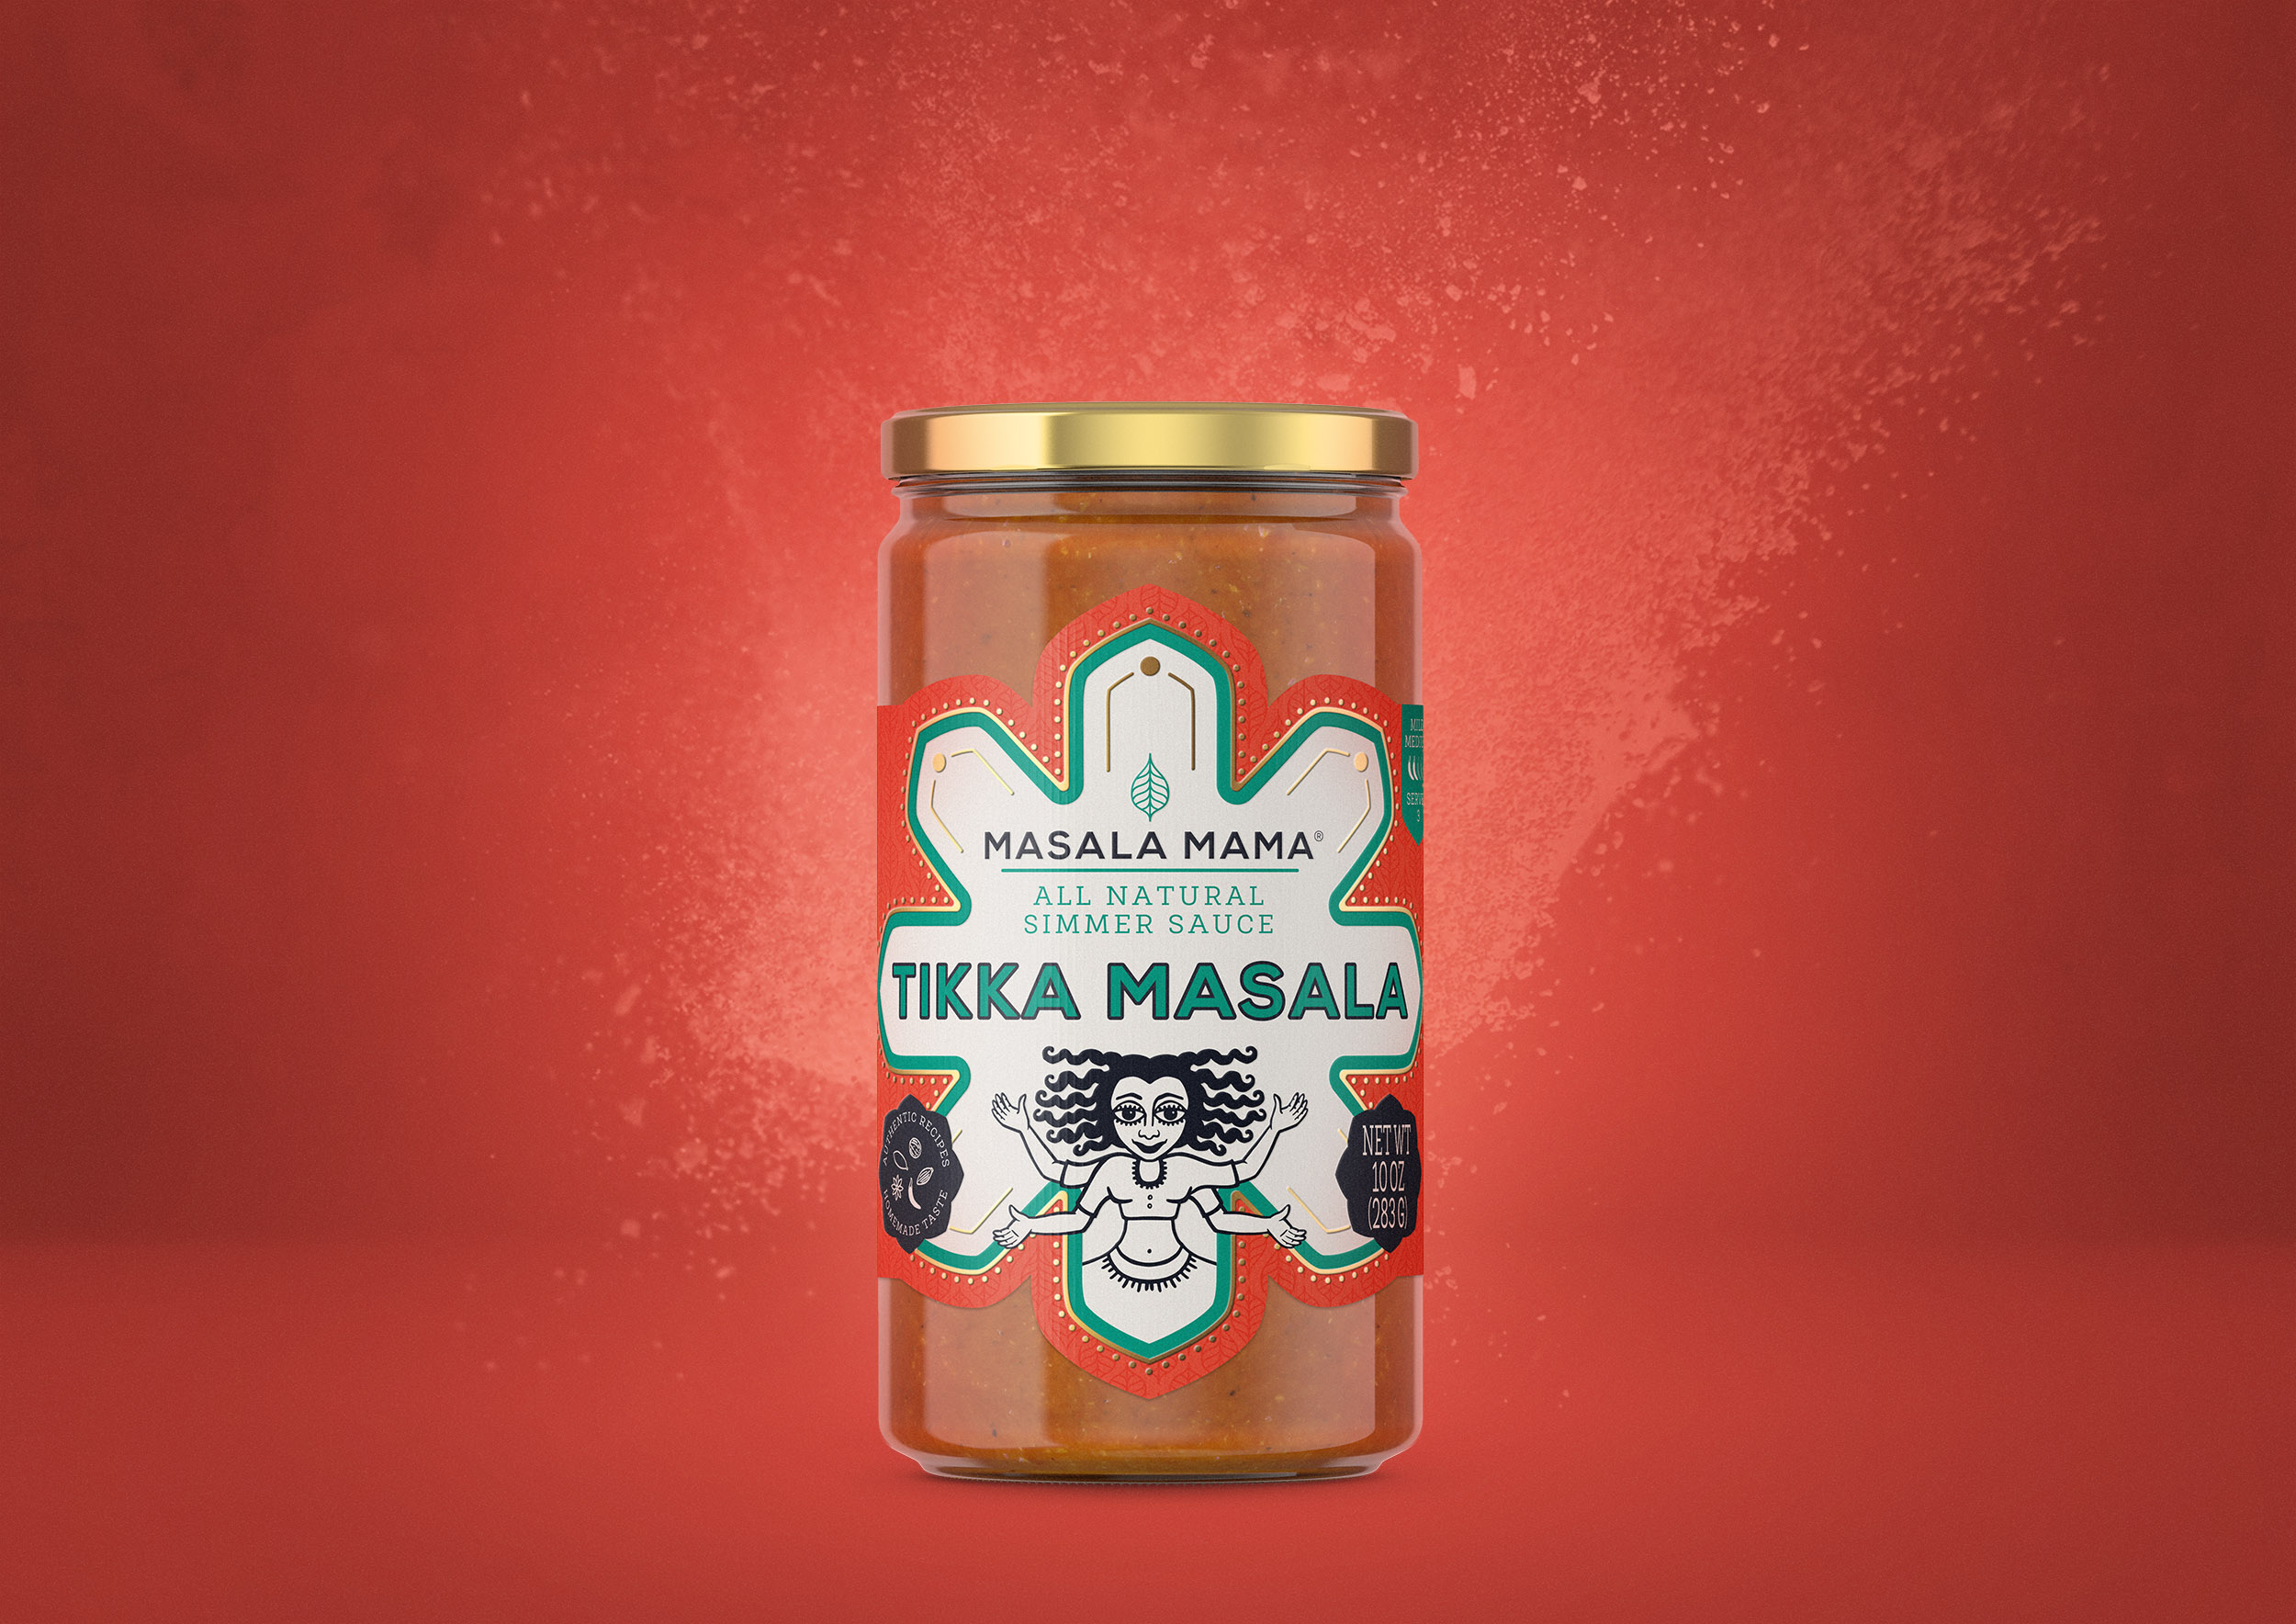 Now at a Whole Foods near you and on Amazon Prime Now * - Nail that promotion and get that raise you've worked so hard for by making dinner for your boss!And after you cook an amazing meal with Masala Mama sauces, sit back and watch the compliments roll in and your career take off.Come home to Mama. Real homemade taste, real easy.* With 2-hour delivery on Amazon Prime Now.